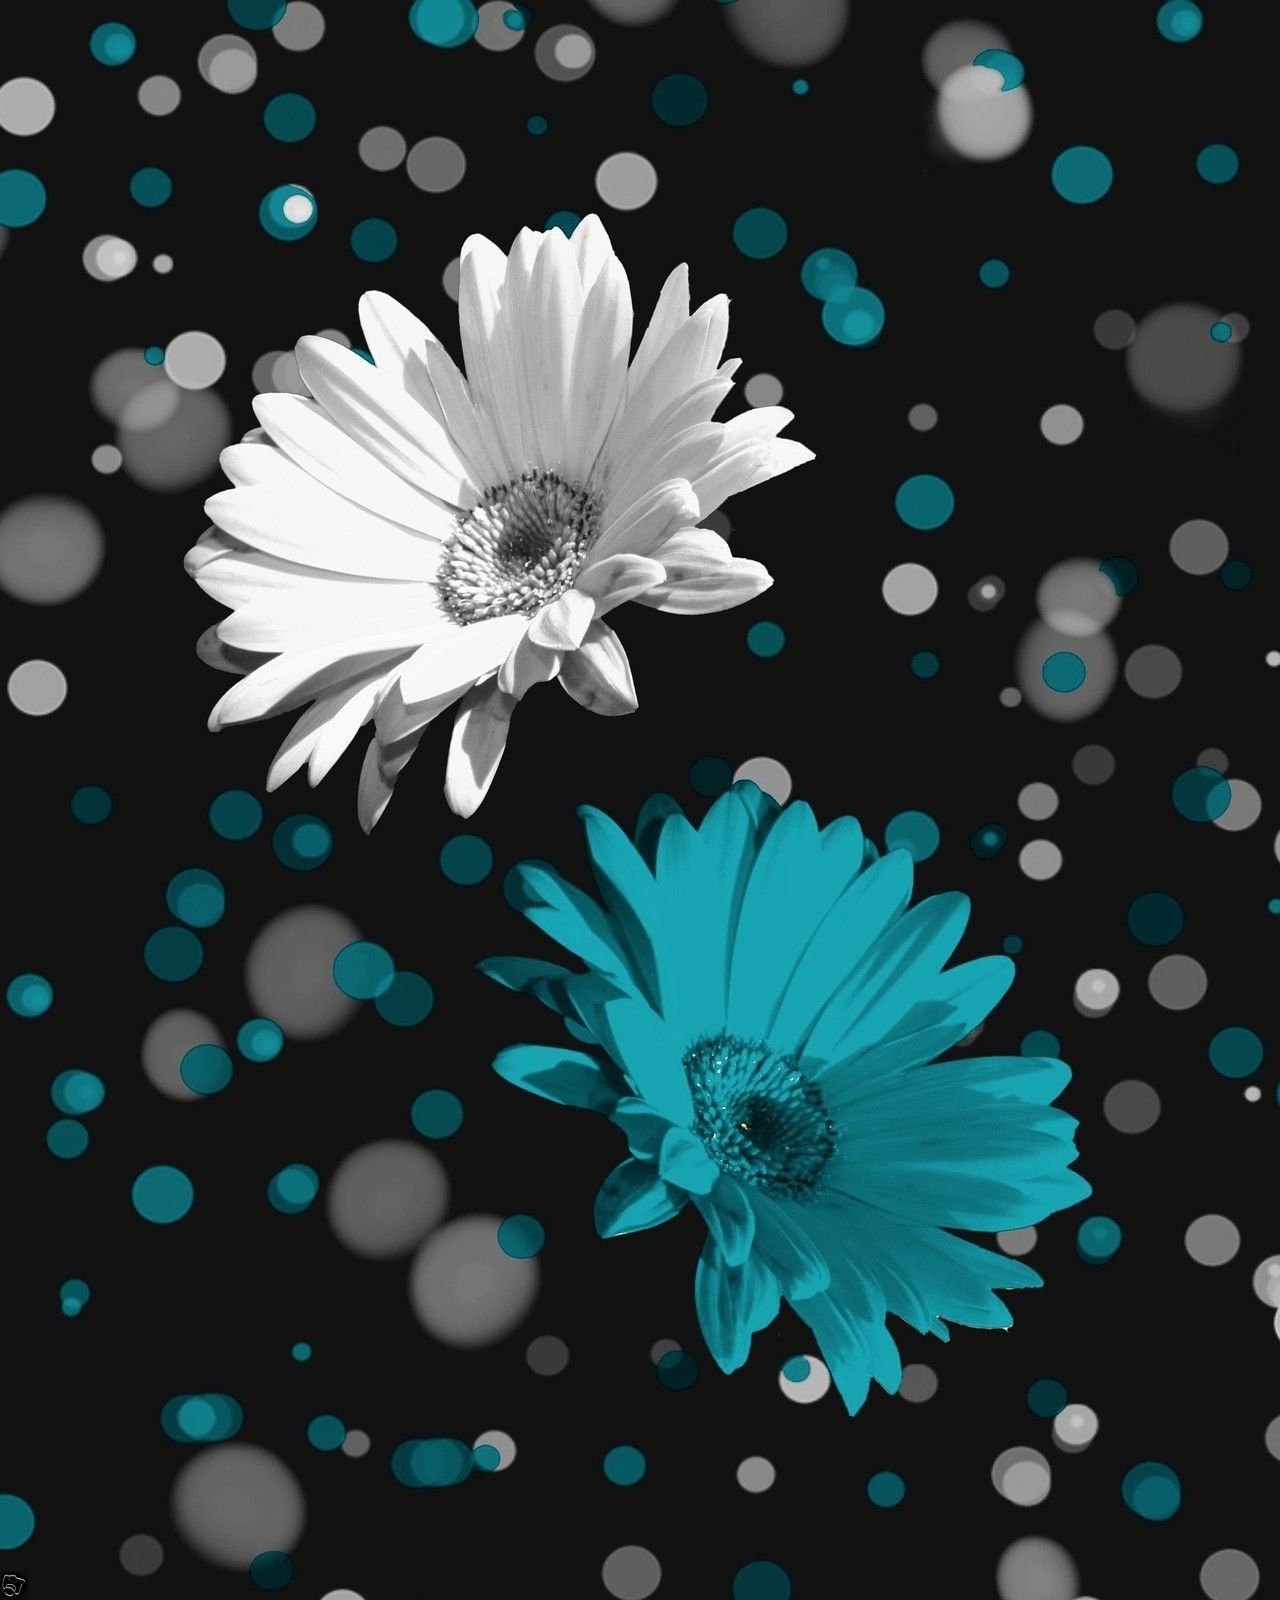 Current Teal And Black Wall Art Inside Black White Teal Daisy Flowers Wall Art Home Decor Matted Picture (View 4 of 15)